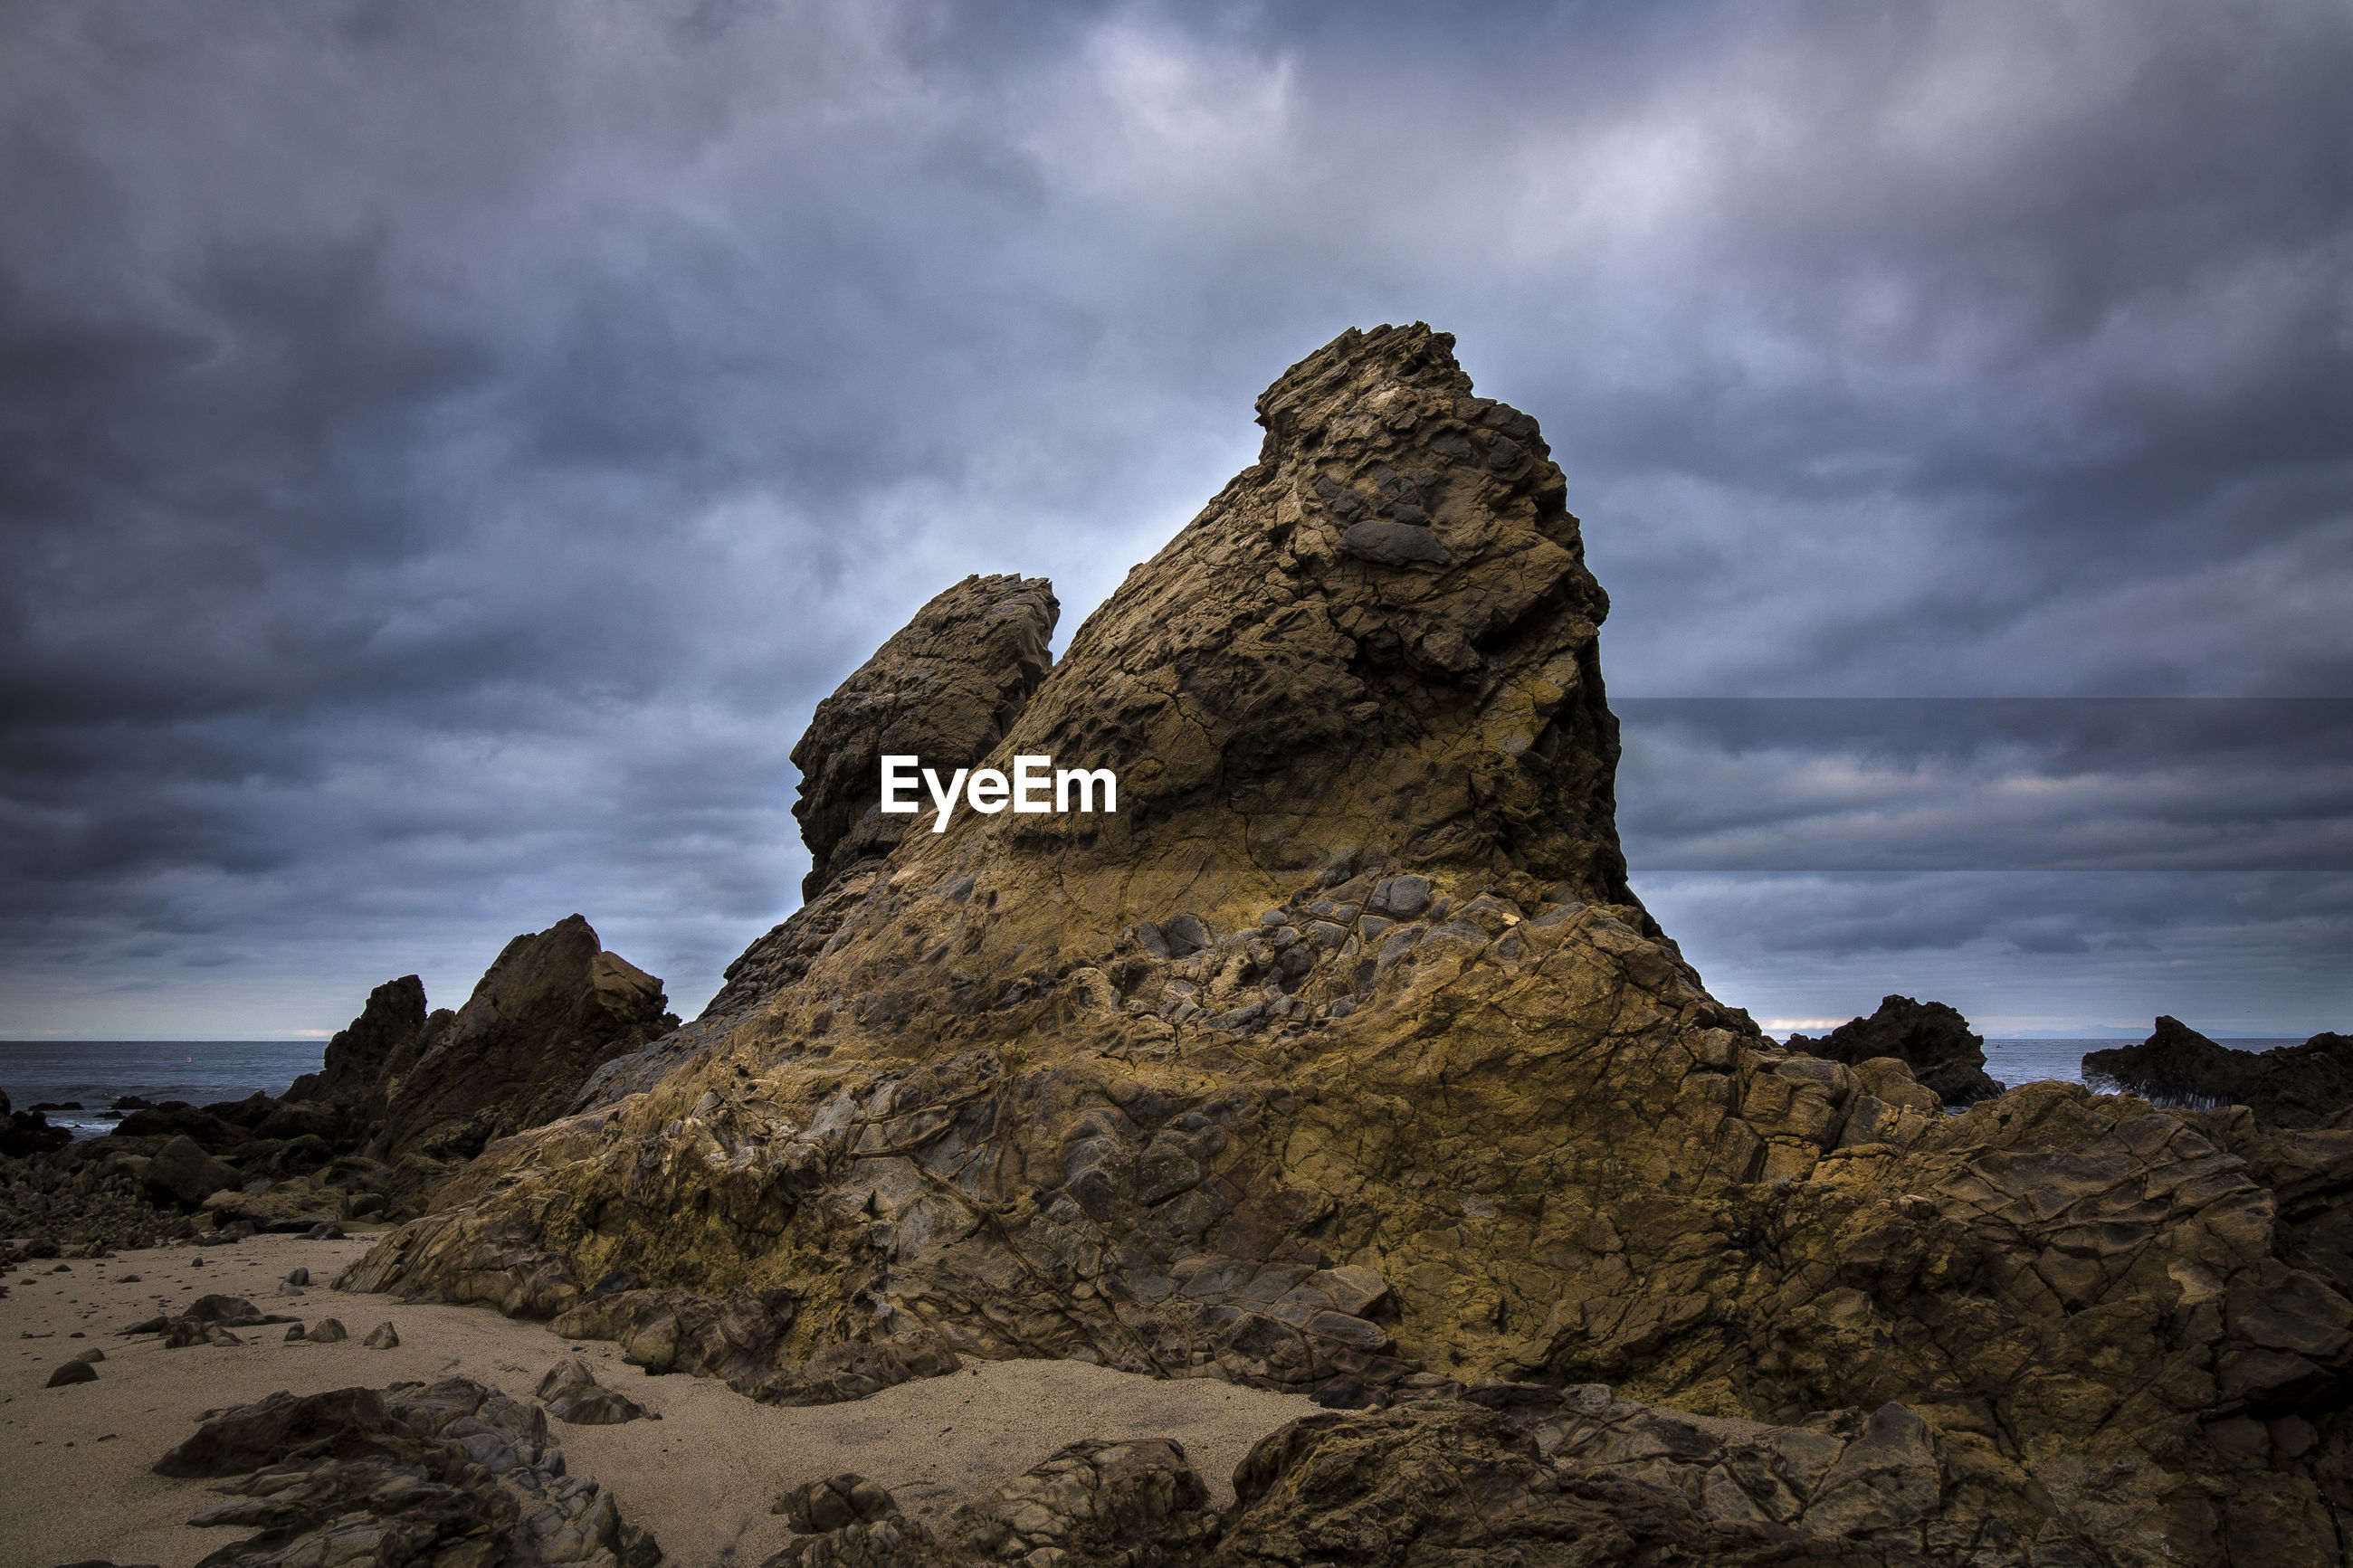 Rock formation at beach against cloudy sky